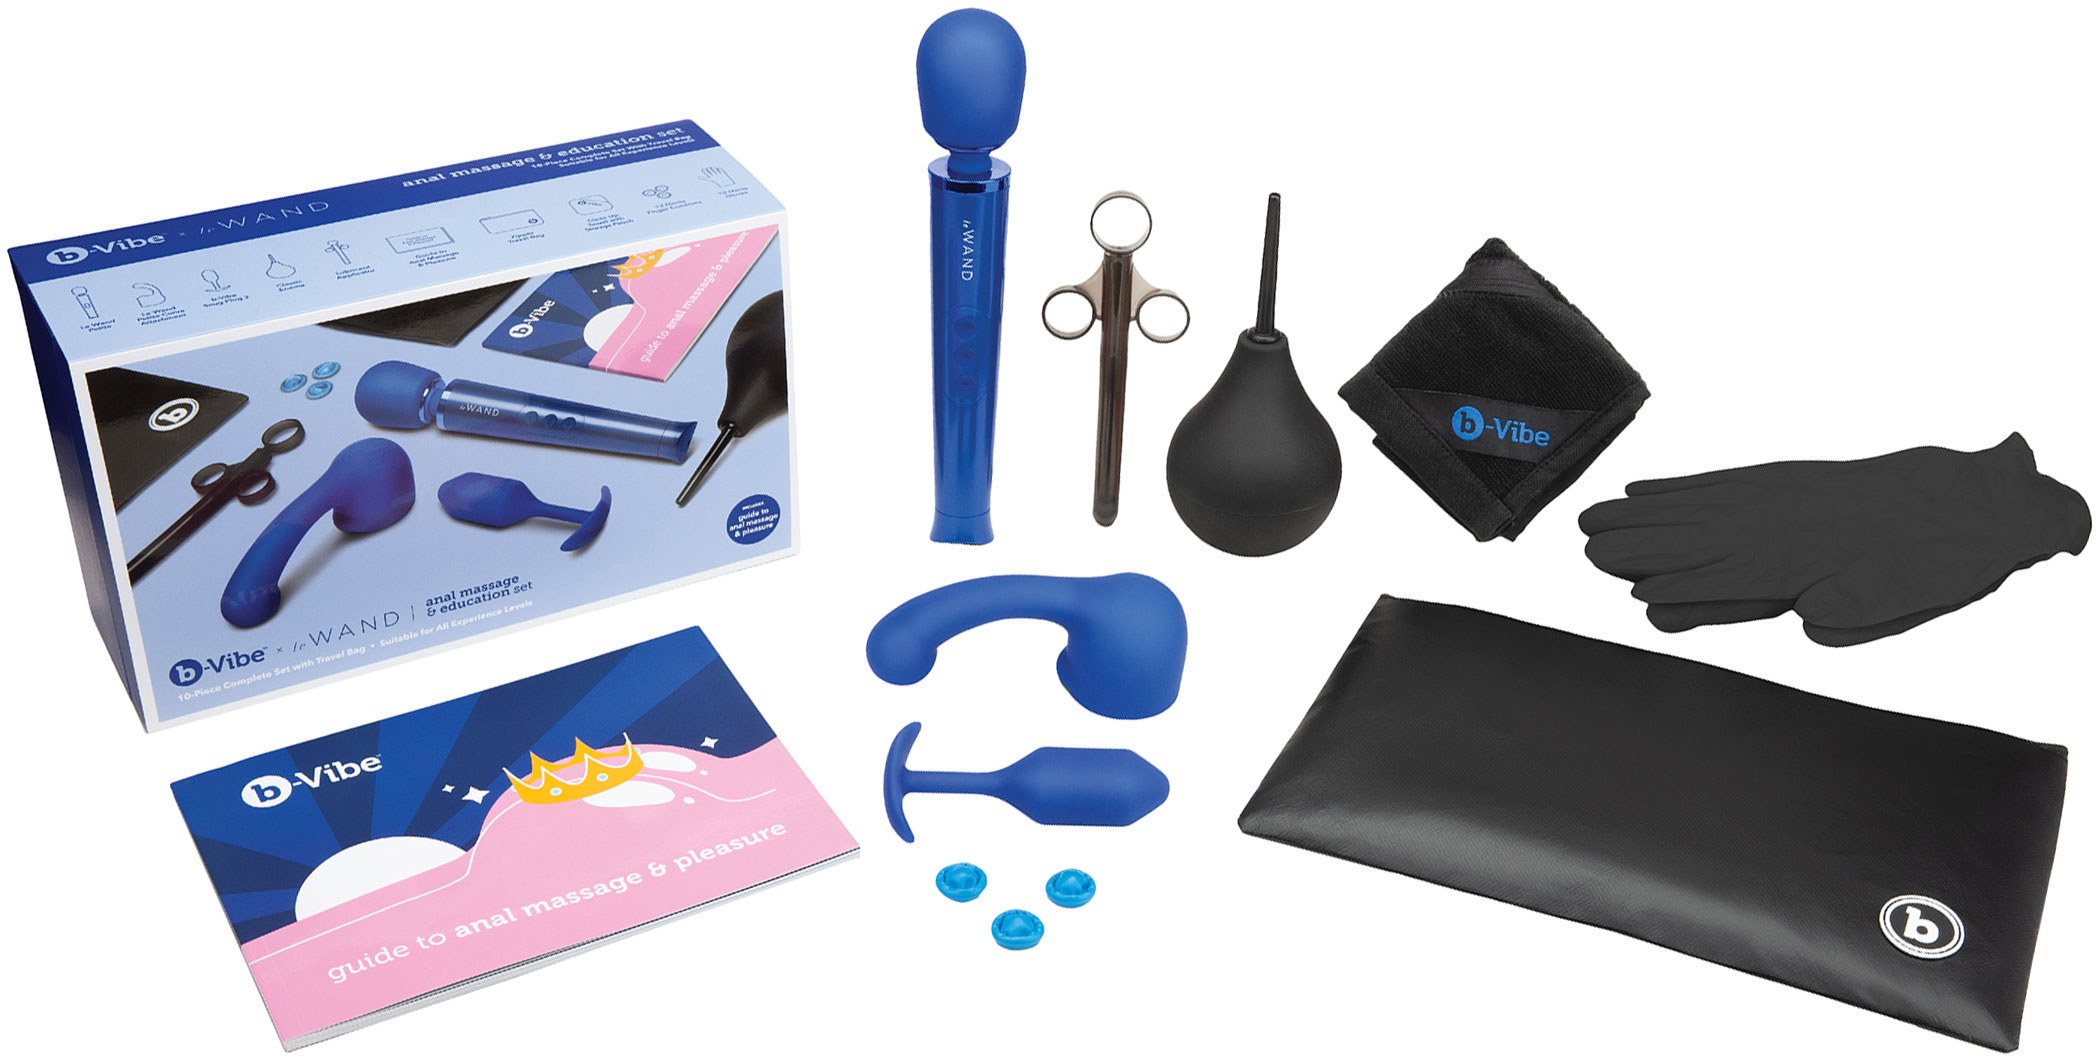 b-Vibe Anal Massage & Education Set With Le Wand, Educational Guide & Snug Plug 2 - What's Included?